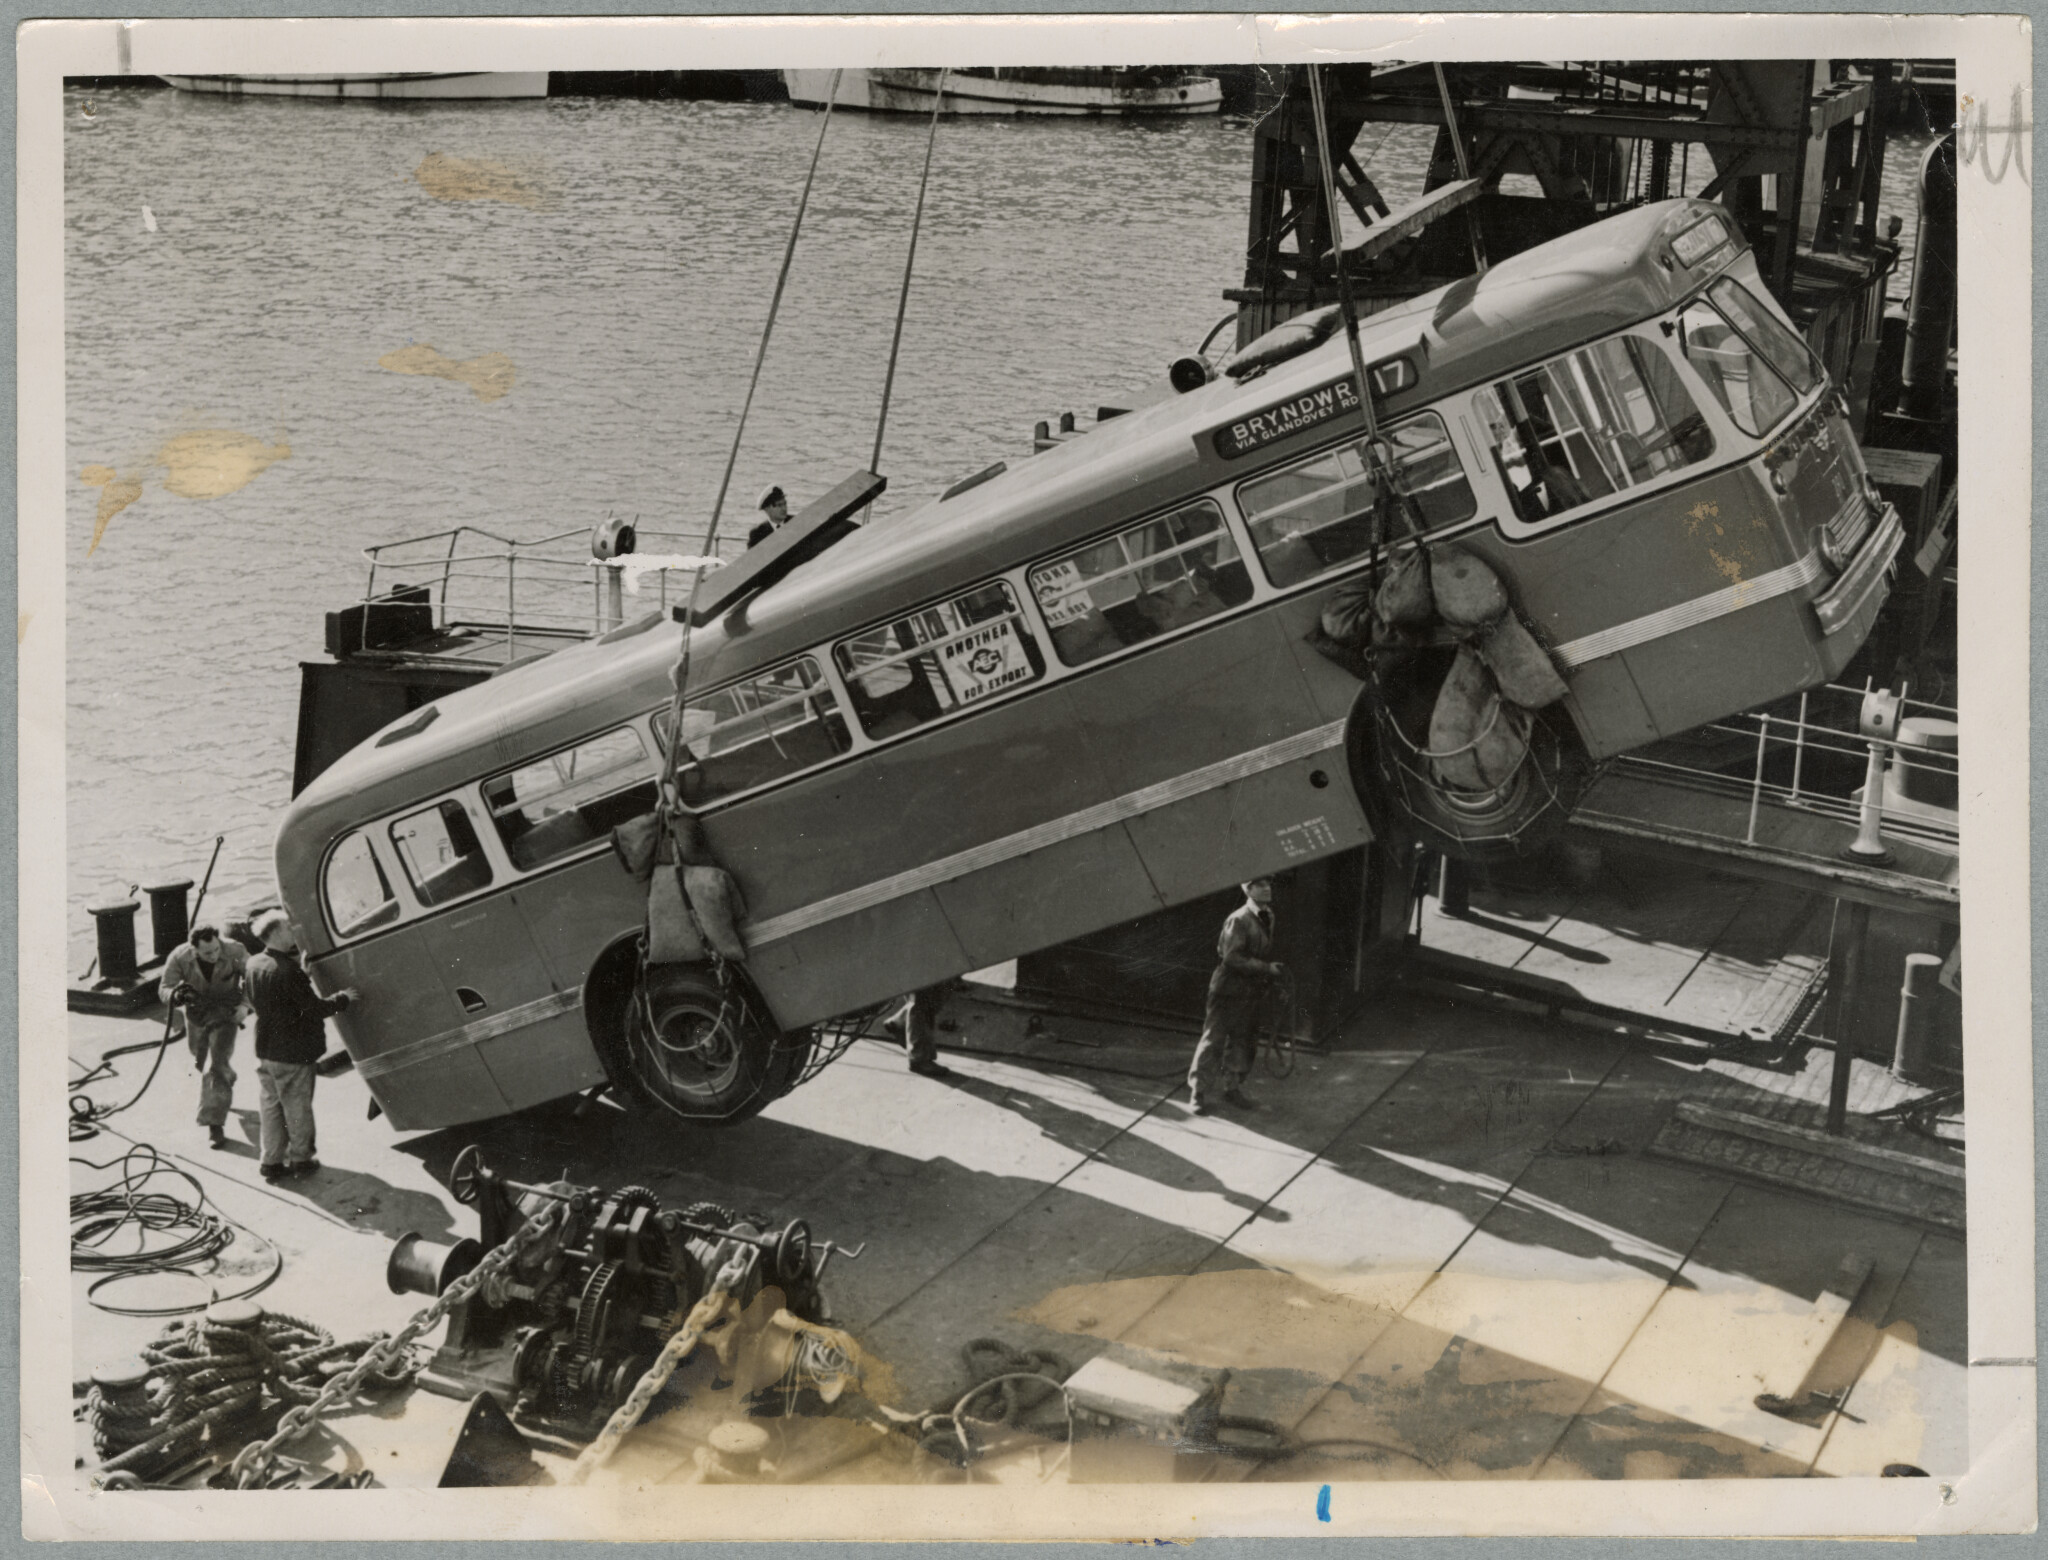 Unloading the new diesel bus. 2 August 1954. Christchurch Star archive. In copyright. CCL-StarP-04189A.